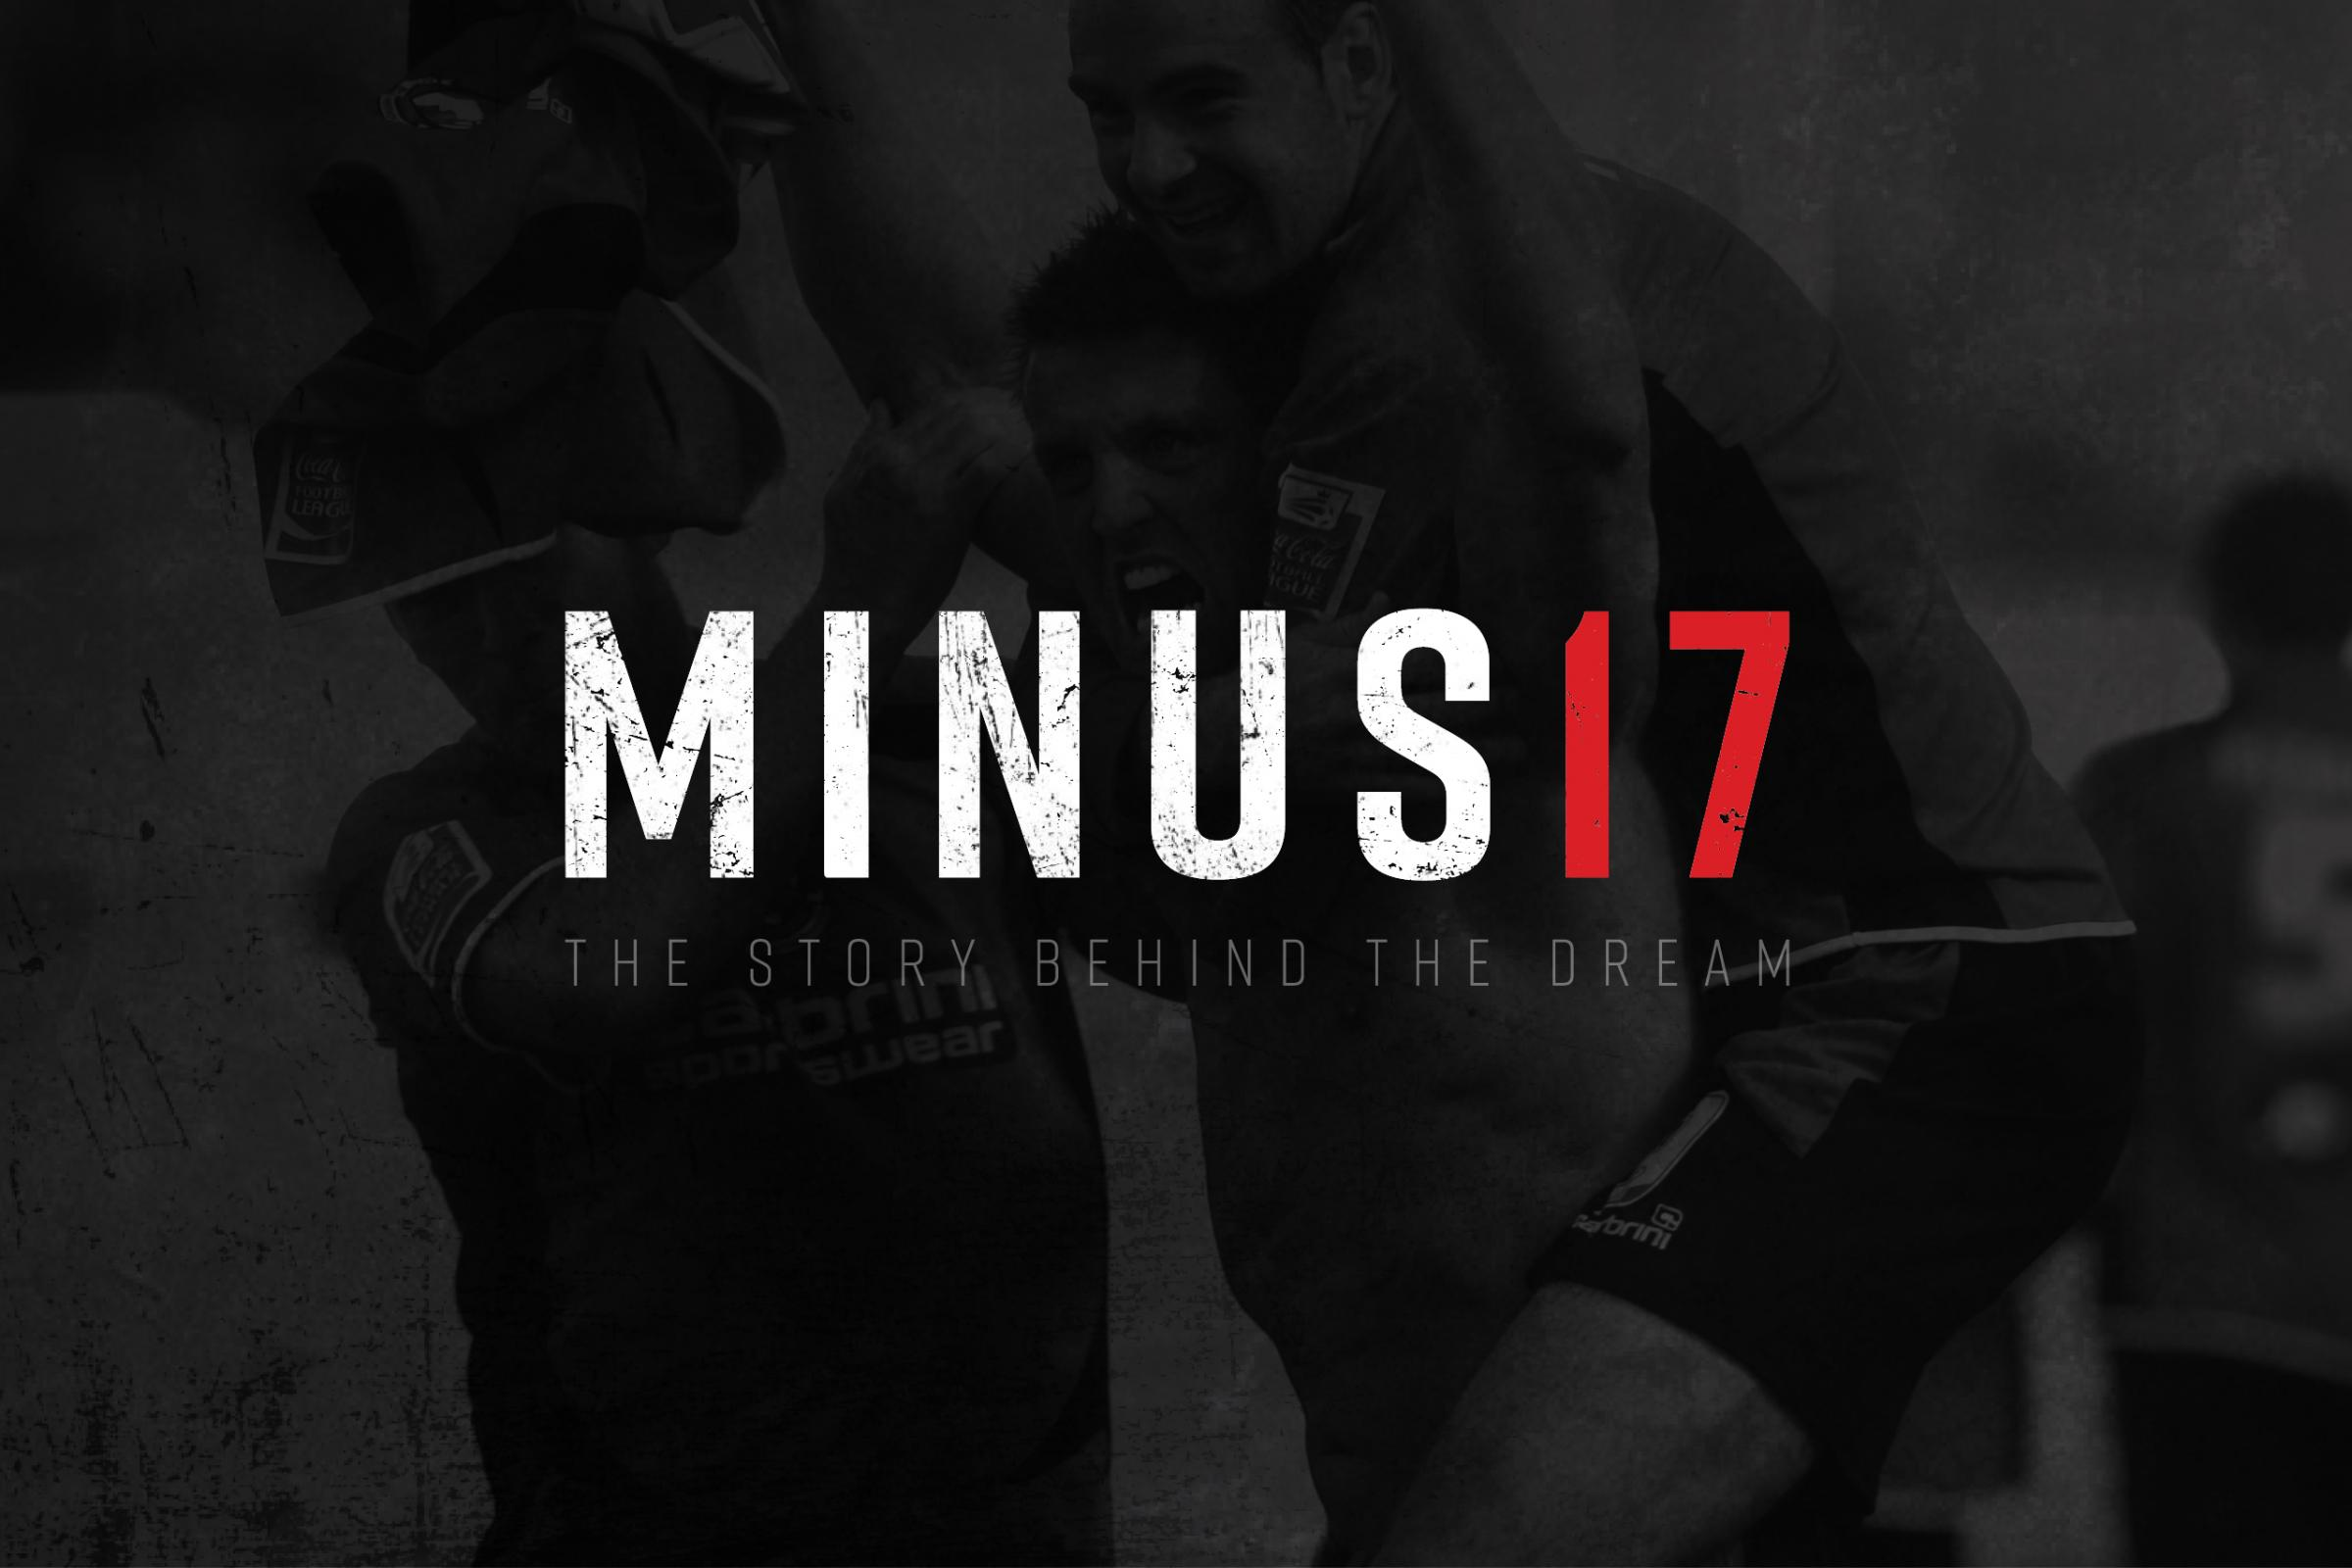 GREATEST ESCAPE: Cherries are set to premiere their Minus 17 documentary (Picture: AFC Bournemouth)